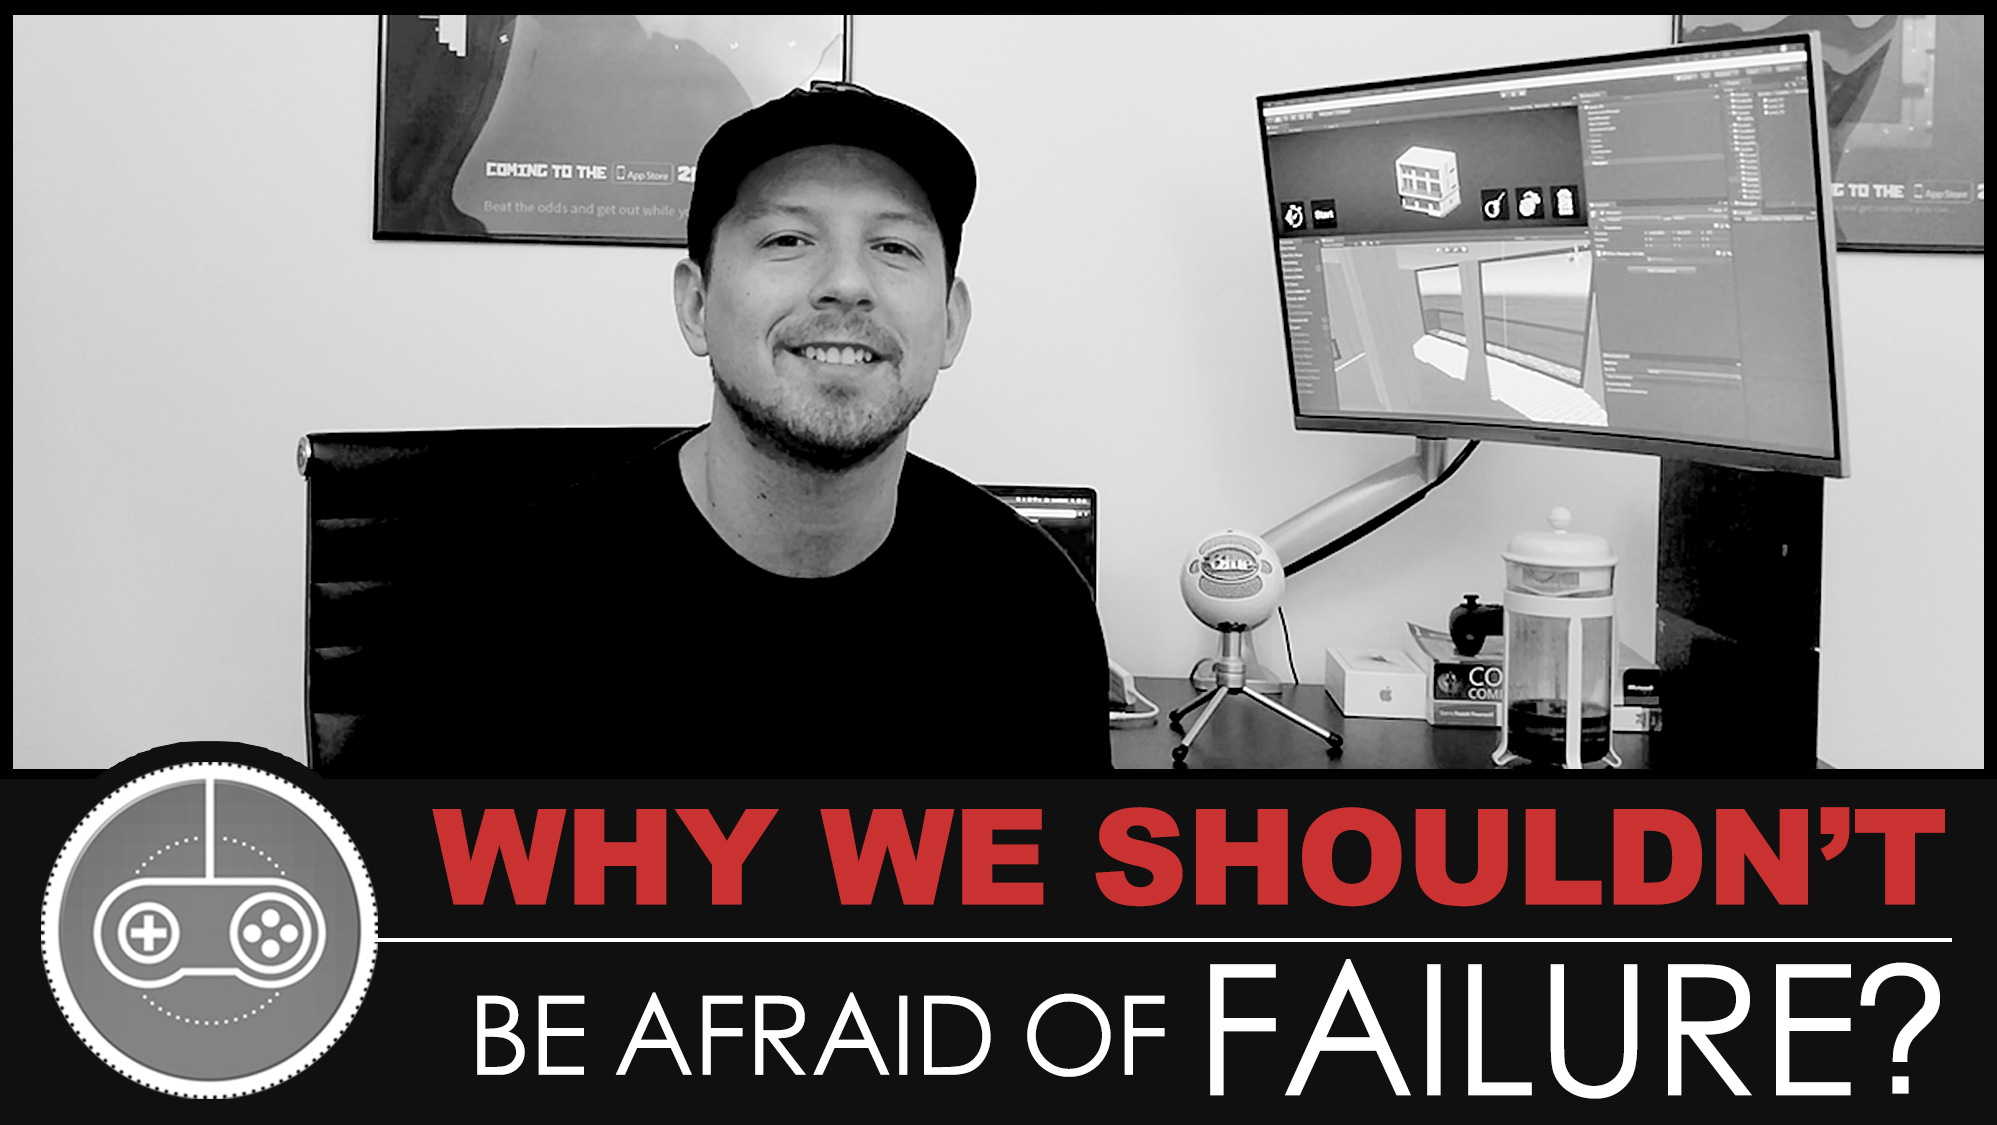 Why we shouldn't be afraid of failure?